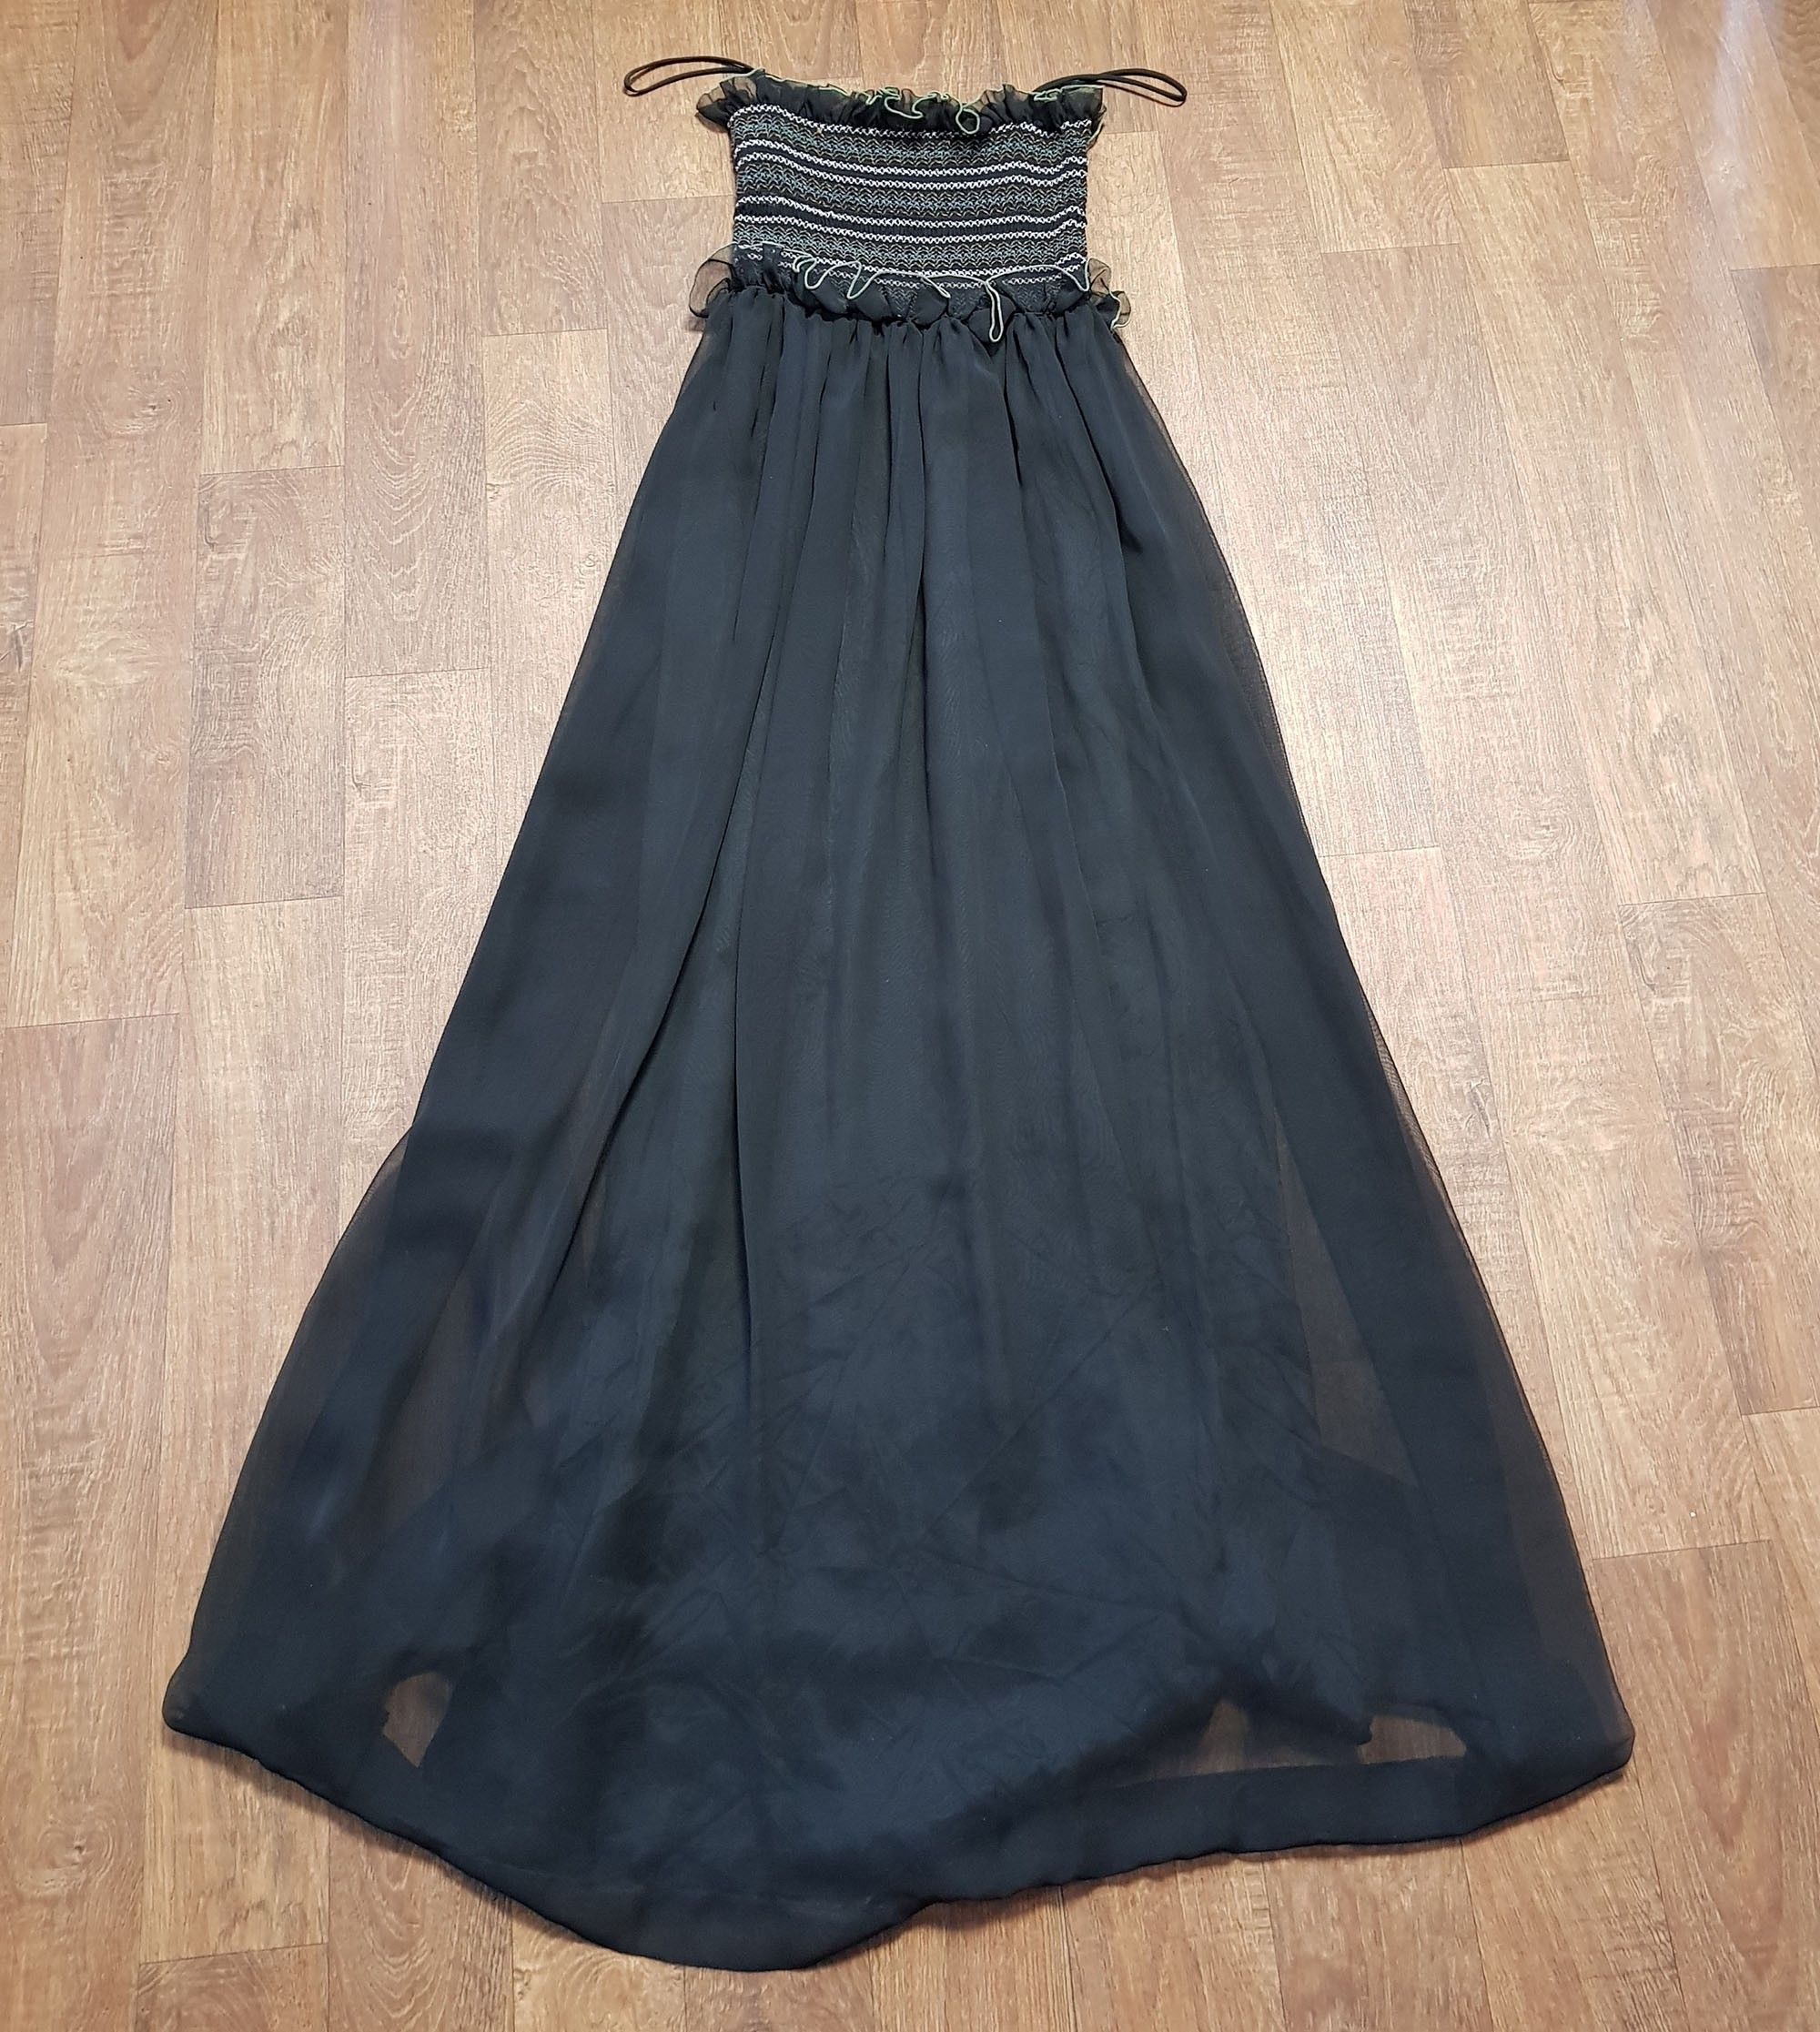 Vintage Jean Varon Black Chiffon Evening Maxi Dress UK Size 8